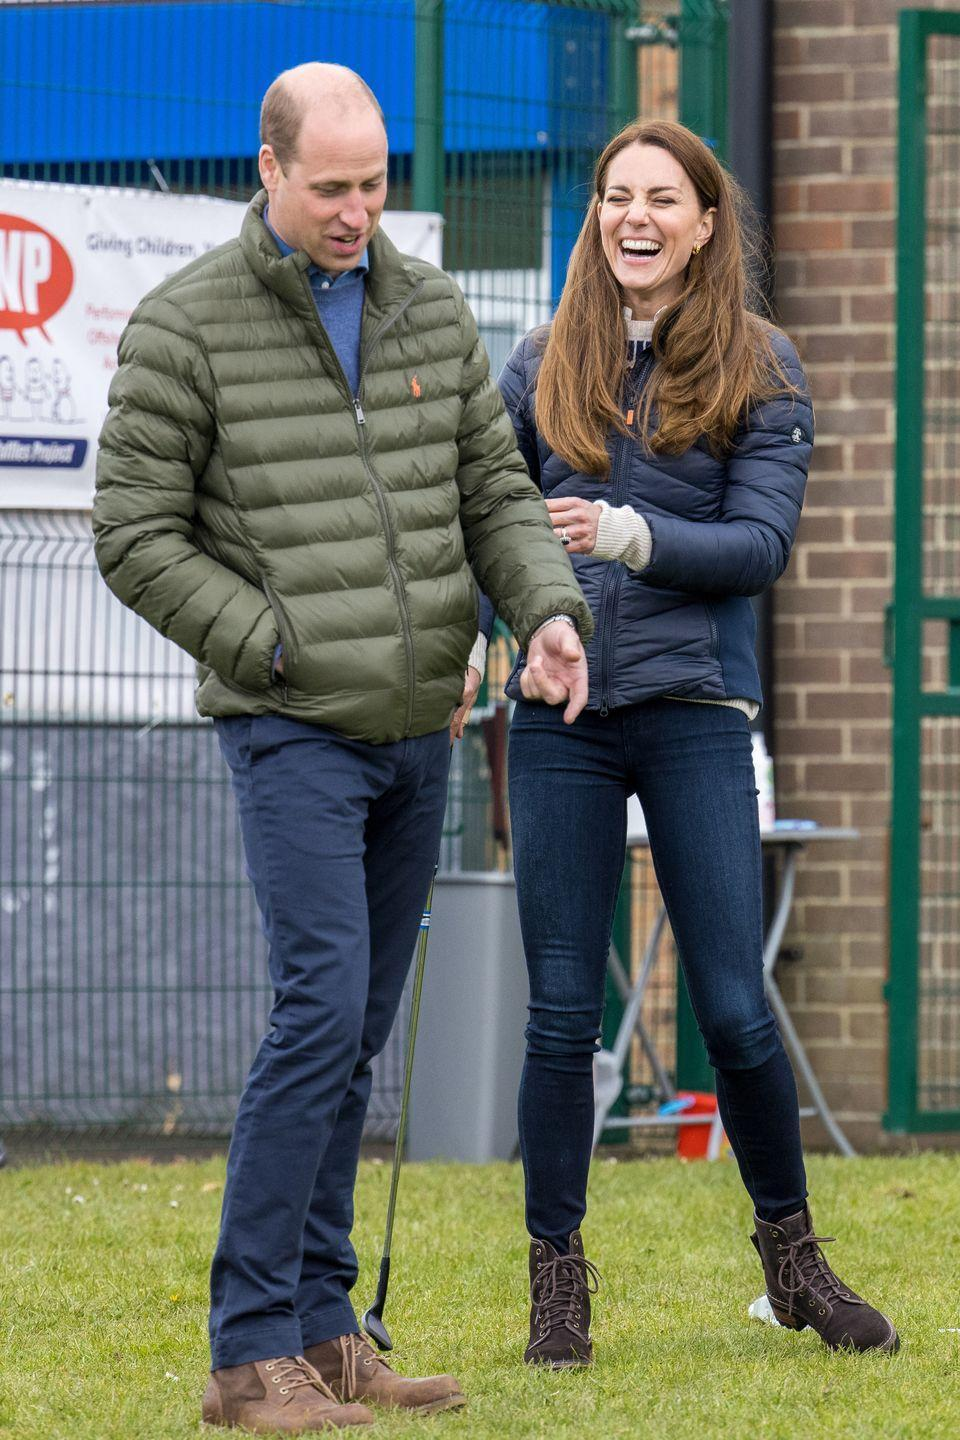 <p>The Duke and Duchess of Cambridge Duchess couldn't contain their laughter during their visit to the Belmont Community Centre in Durham on April 27. </p><p>At one point, they even tried their hand at golf while meeting young people supported by the Cheesy Waffles Project. </p><p>The couple will celebrate their 10th wedding anniversary on Thursday, April 29. </p>